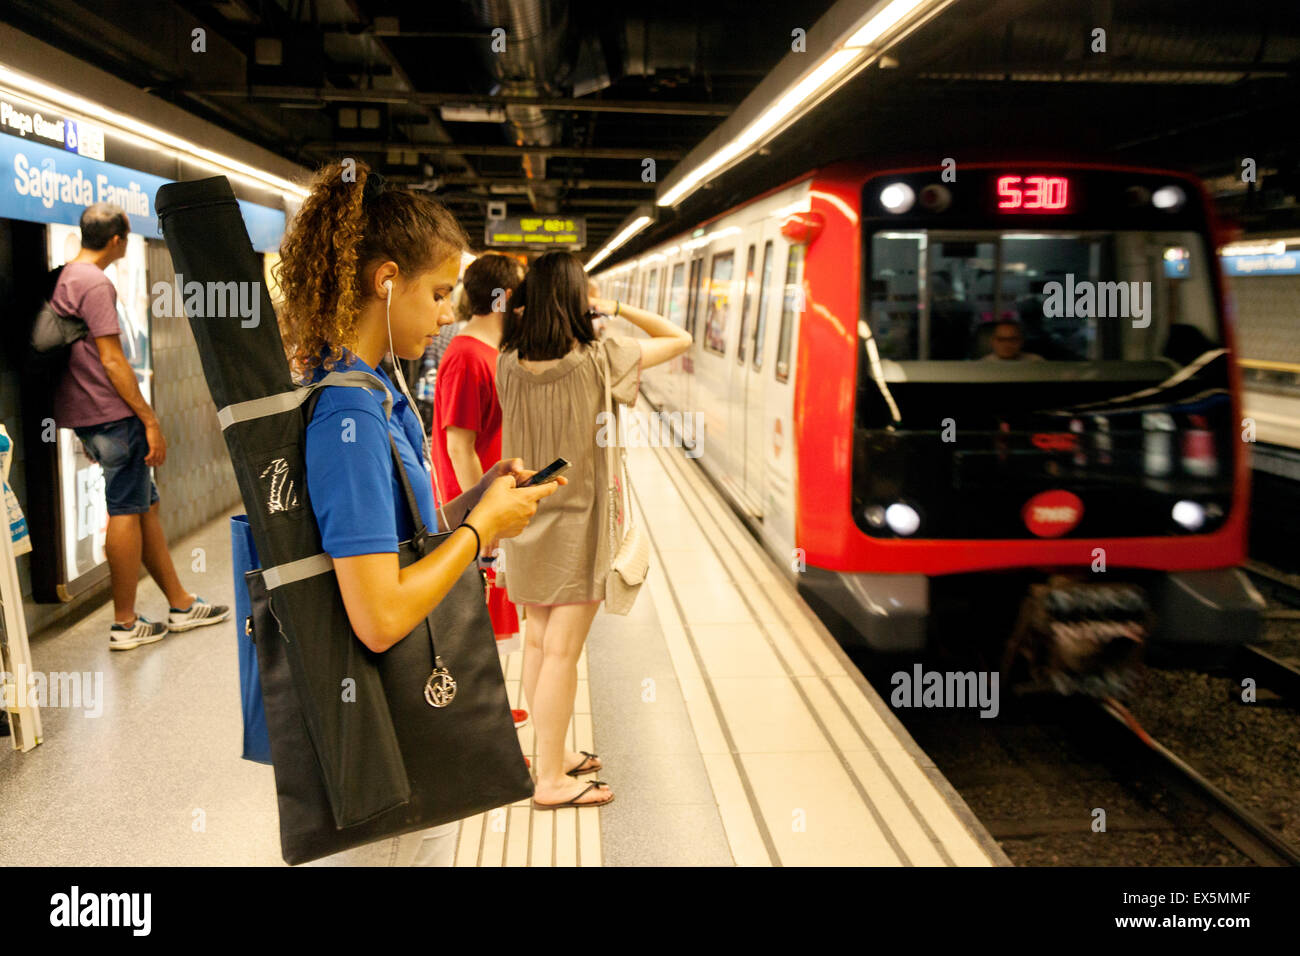 A young woman waiting for a train on the station platform at Sagrada Familia,  the Barcelona Metro, Barcelona, Spain - Stock Image